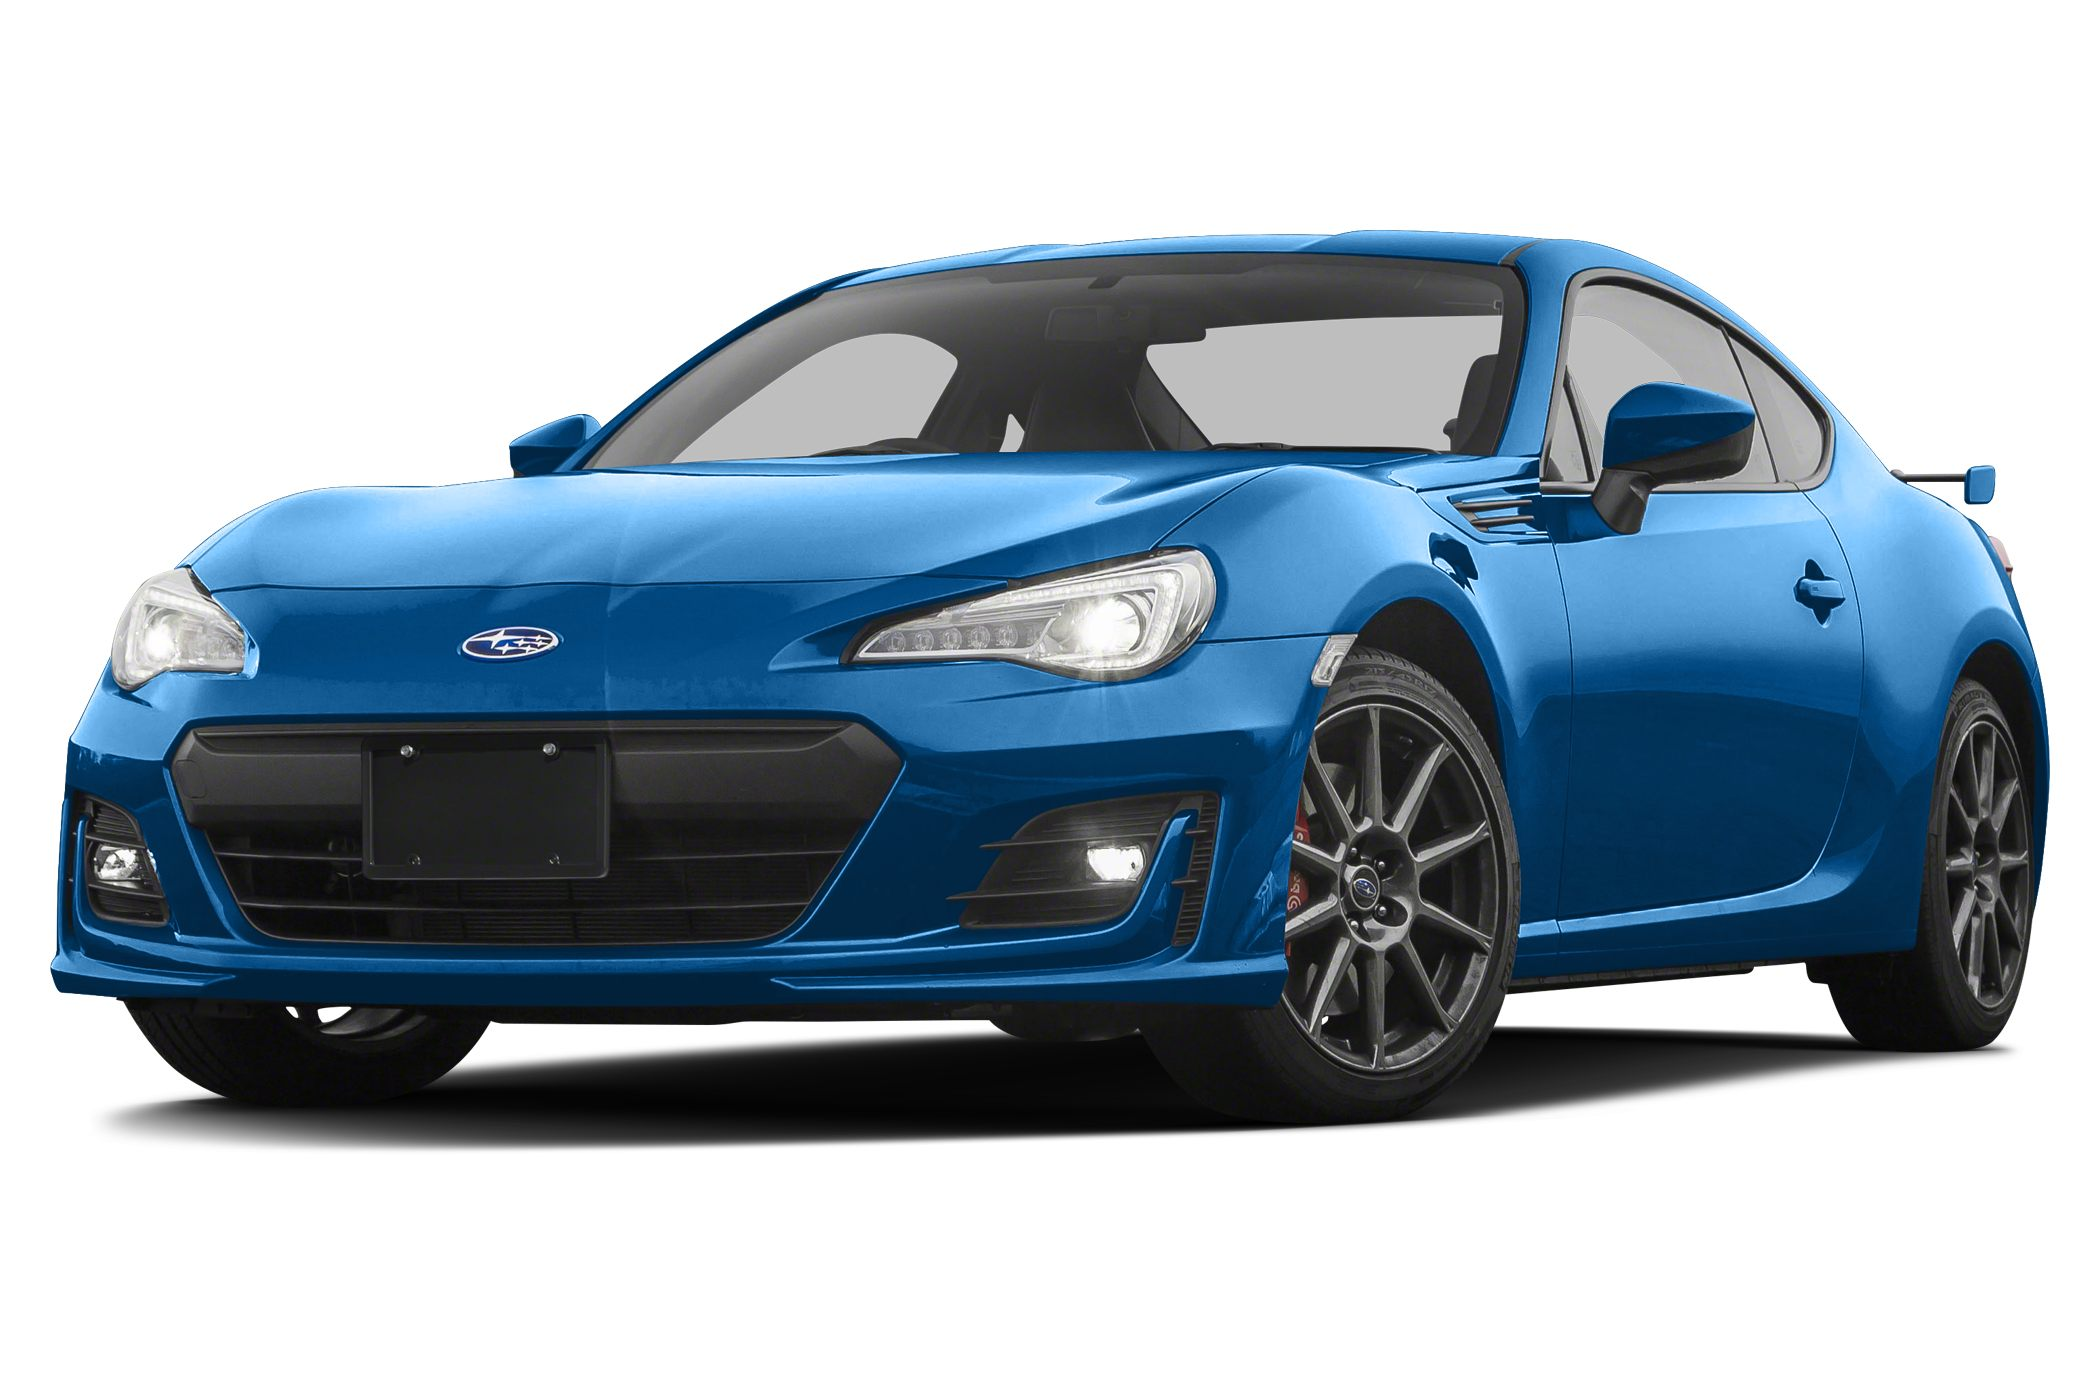 subaru brz gets updates limited edition series blue model for 2015 autoblog. Black Bedroom Furniture Sets. Home Design Ideas